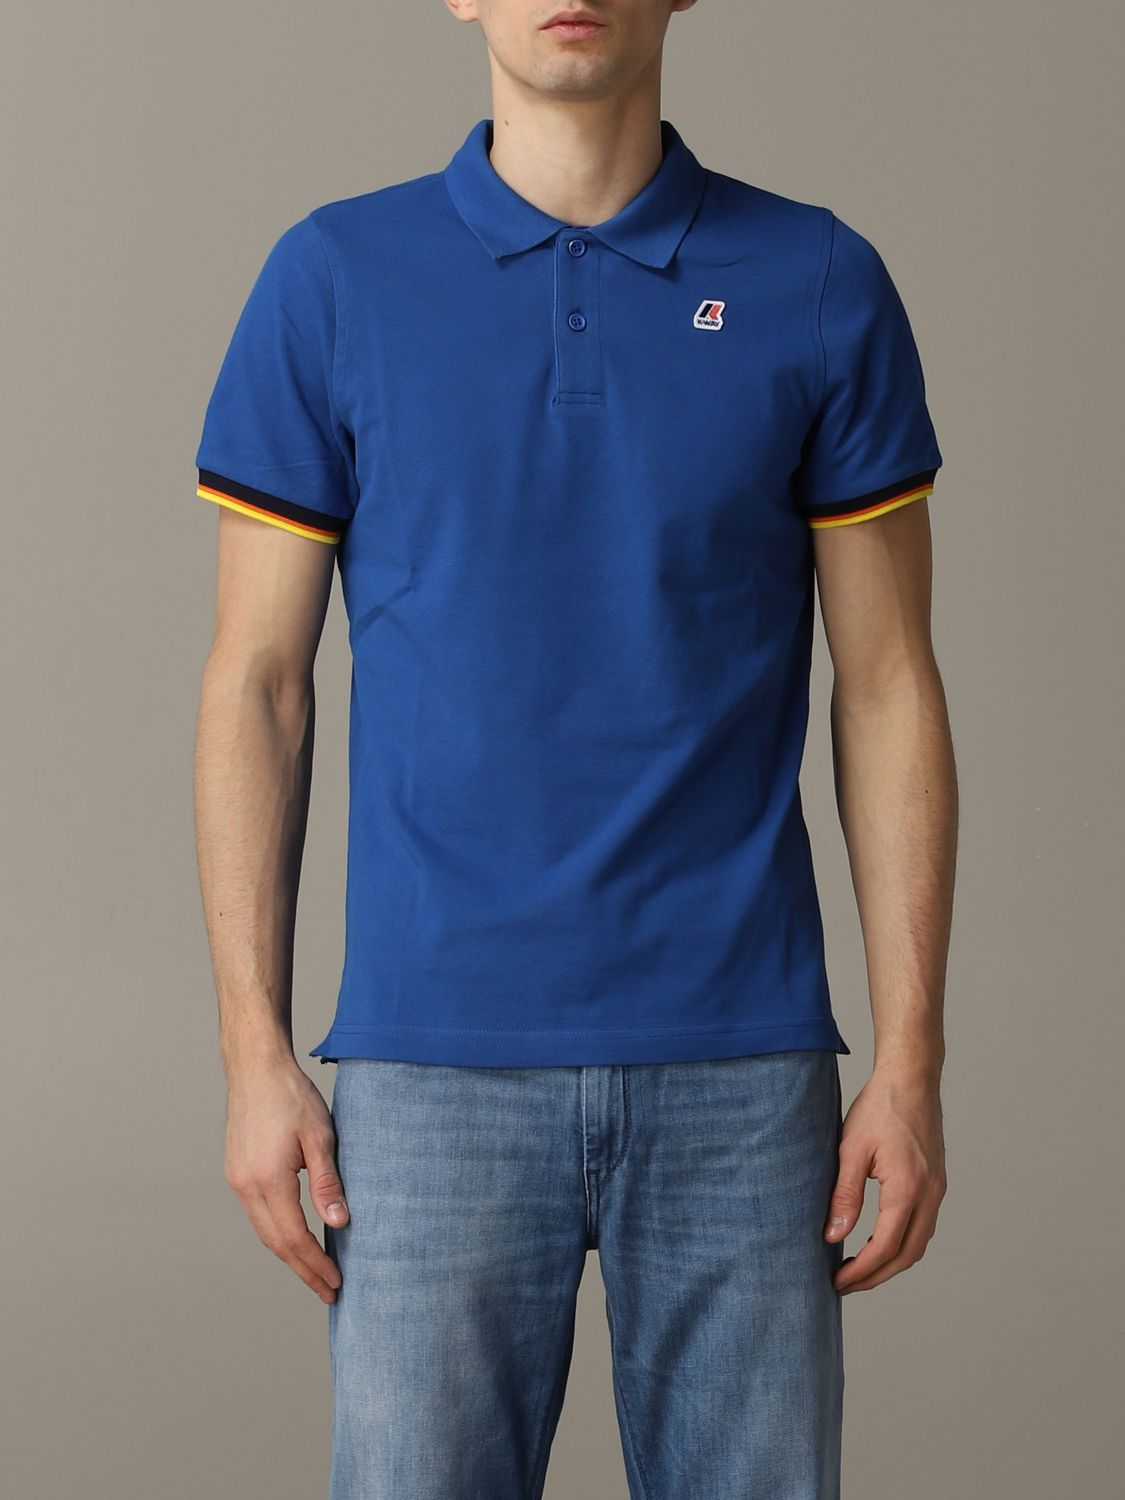 Polo herren K-way royal blue 1